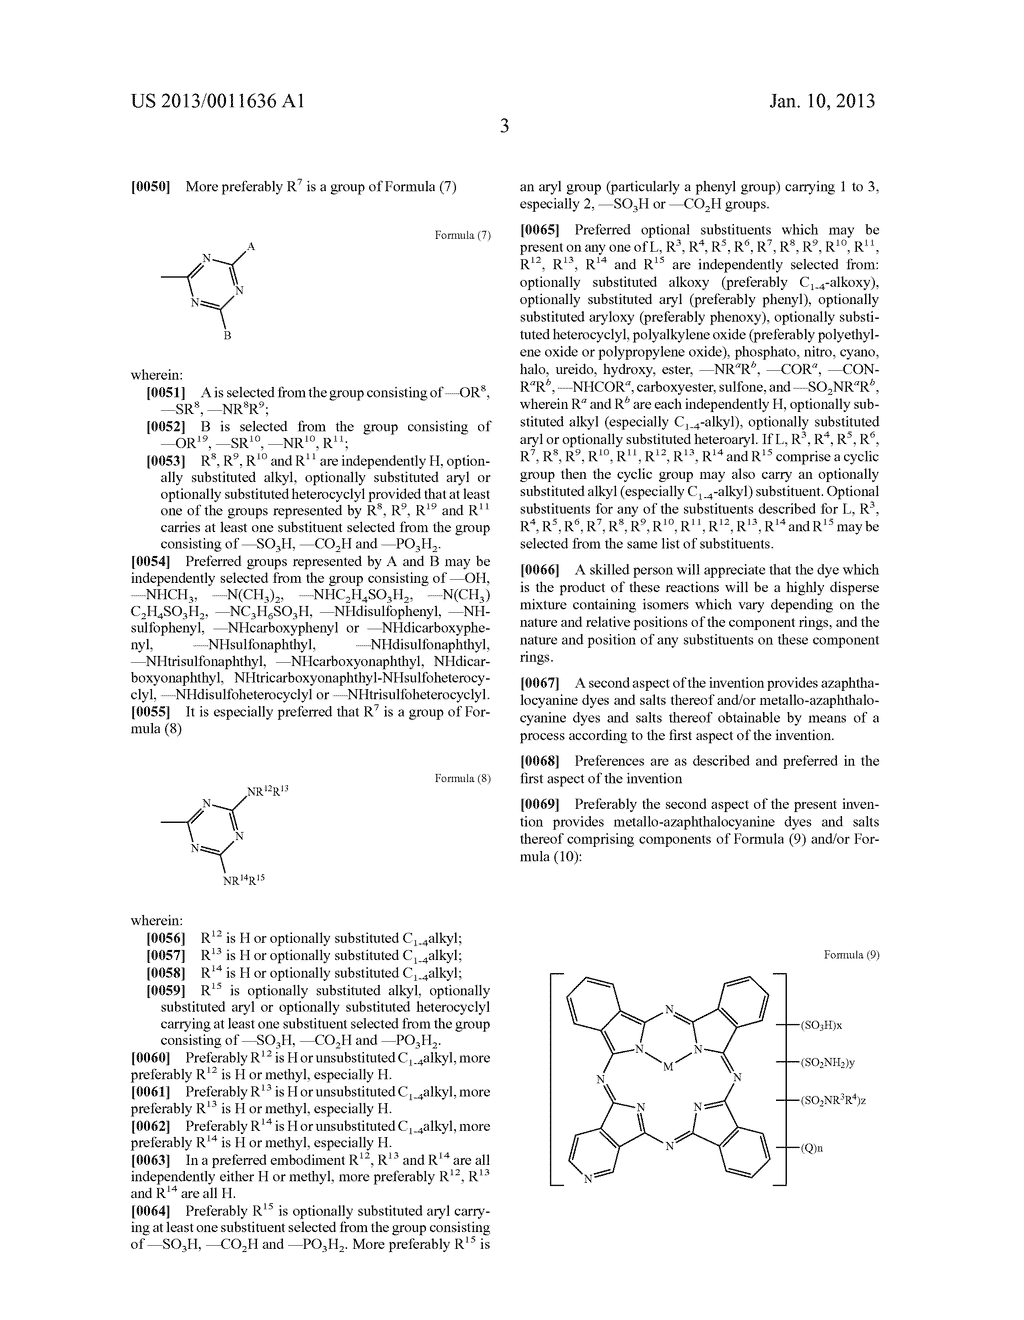 Azaphthalocyanines and Their use in Ink Jet Printing - diagram, schematic, and image 04